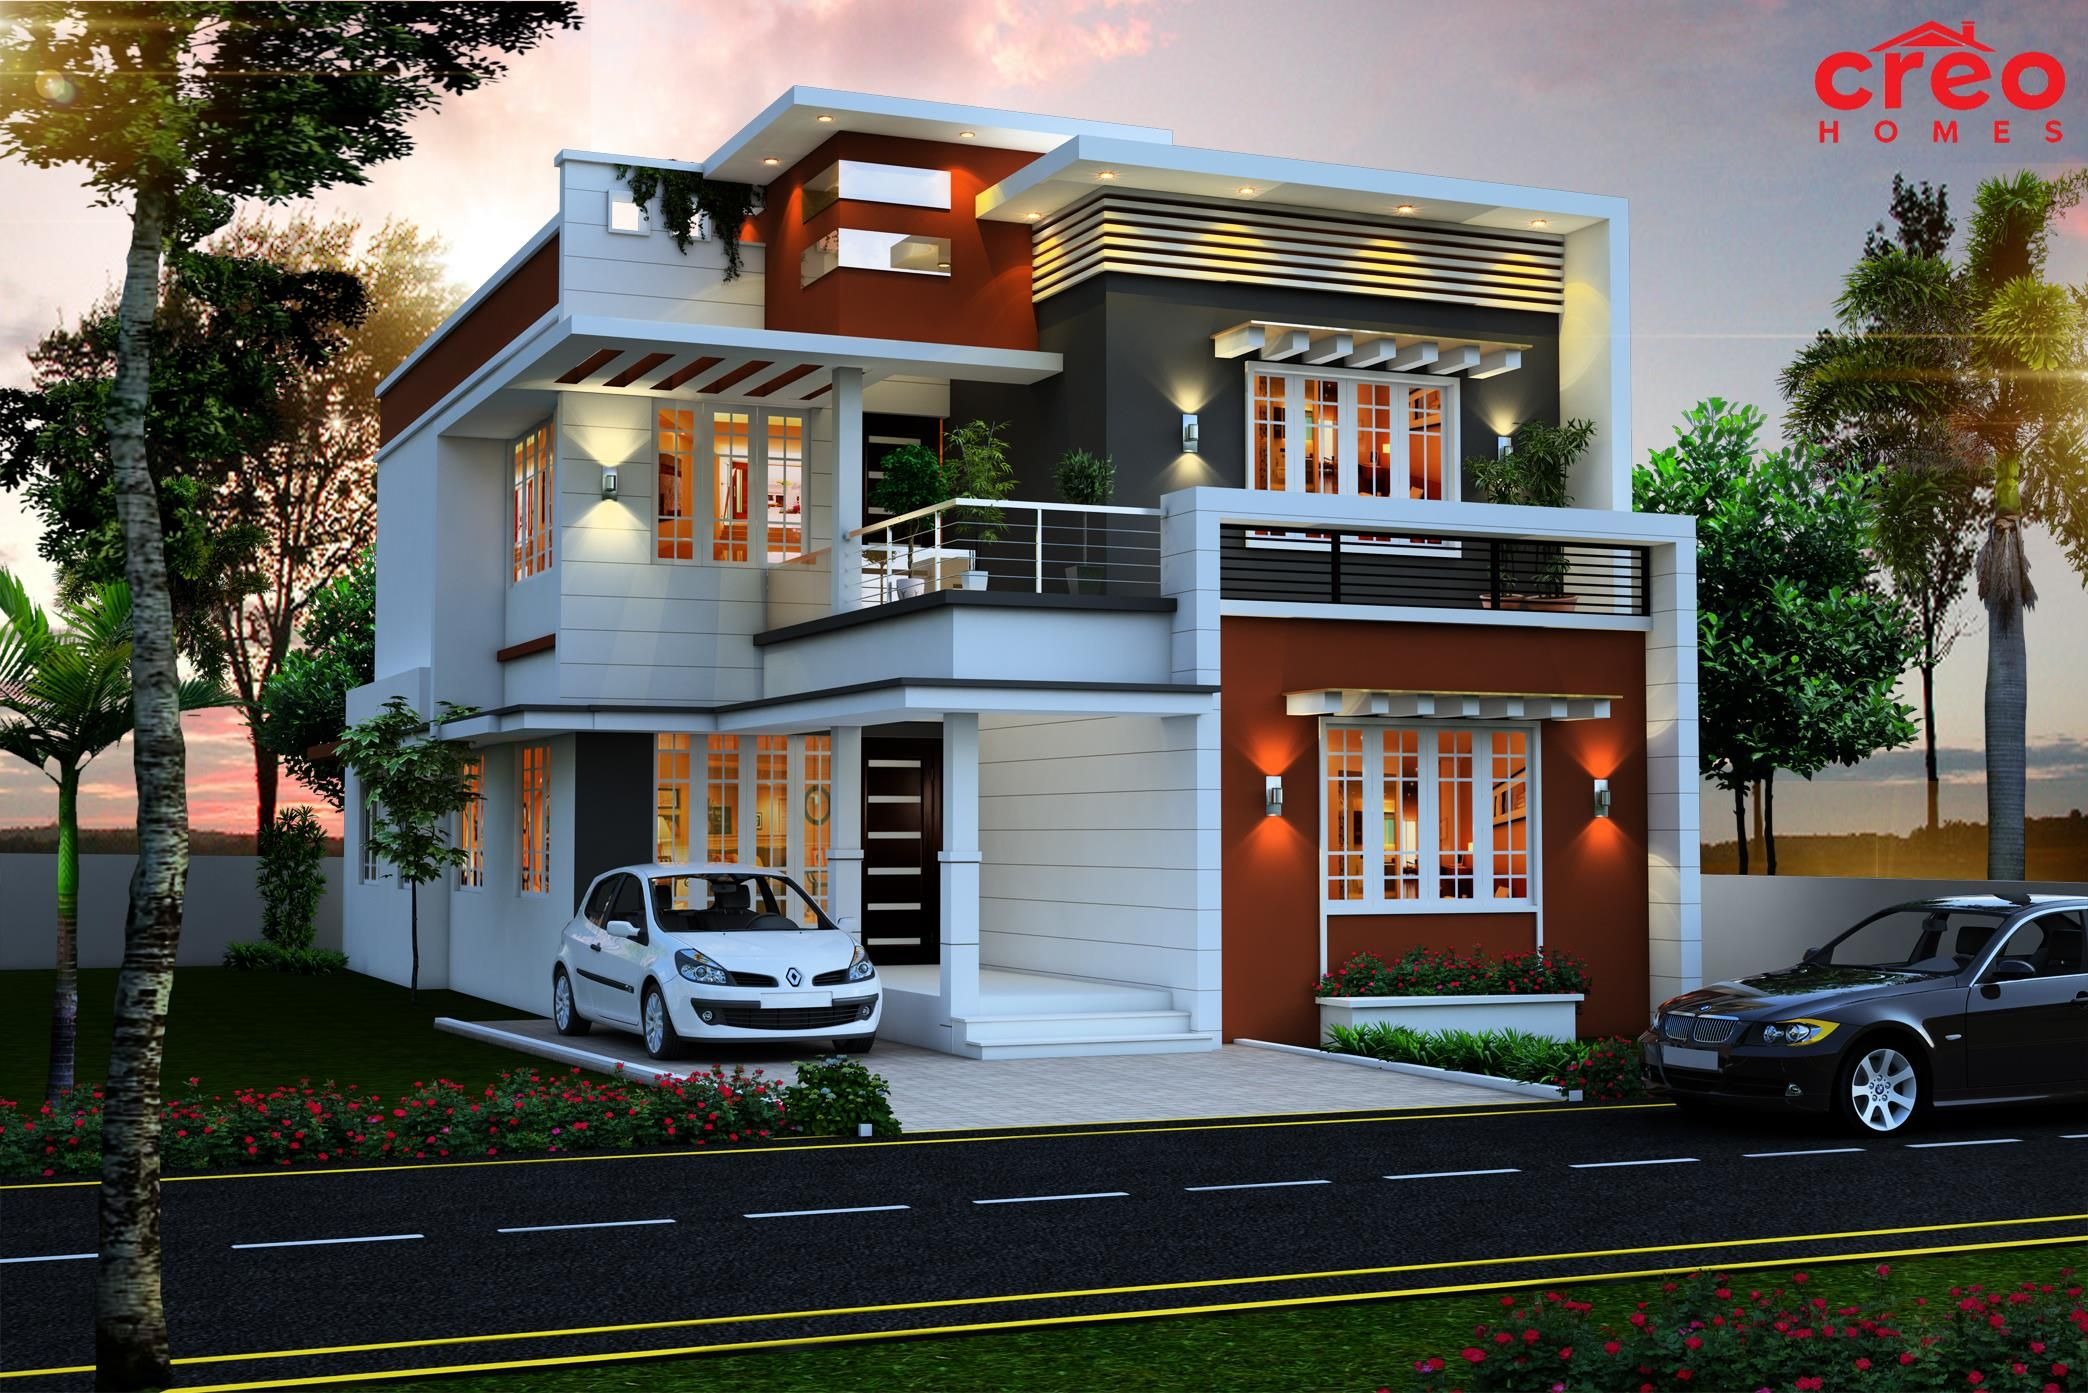 Home Design Beautifull Backgrounds Http Wallawy Com Home